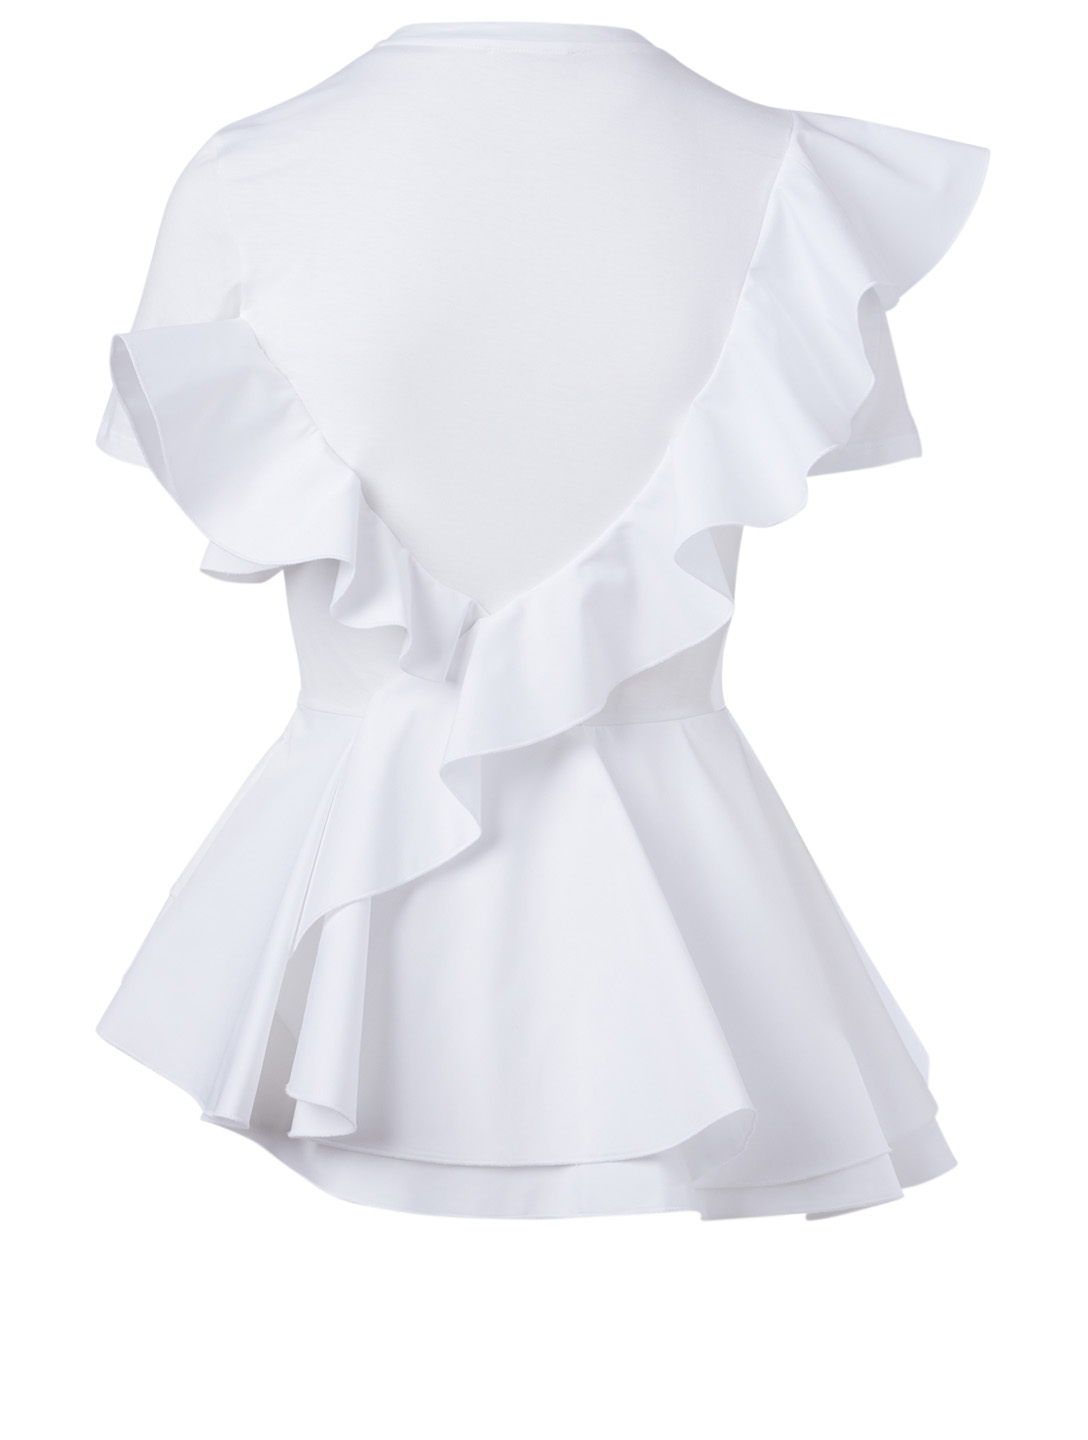 ALEXANDER MCQUEEN This cotton T-shirt has been updated with a roundneck and asymmetric ruffle peplum detail. Femmes Blanc